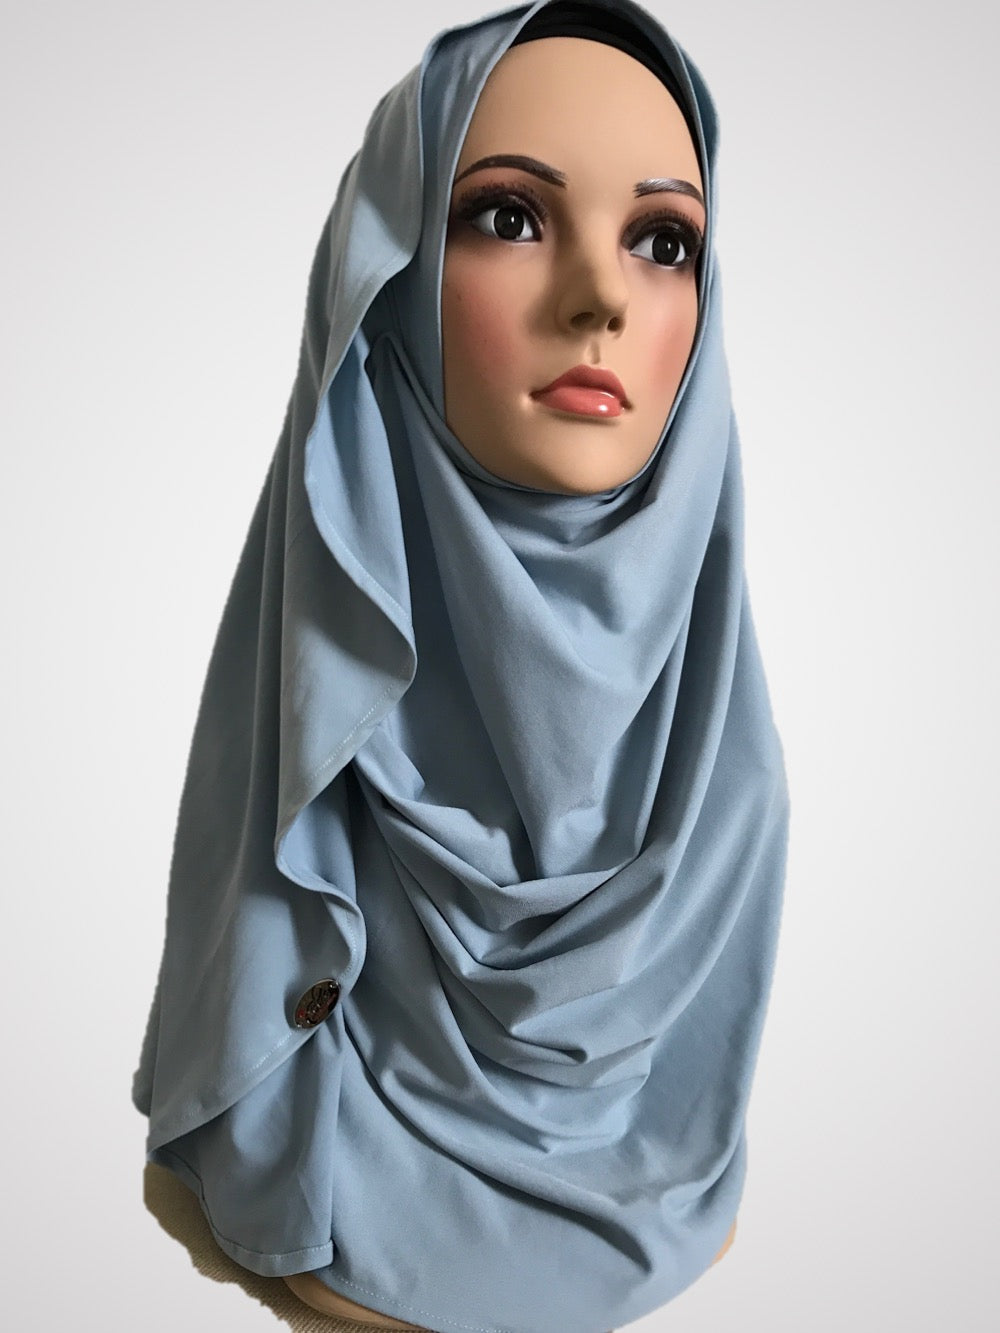 Columbia Sky Blue stretchy (KOR) instant hijab CF